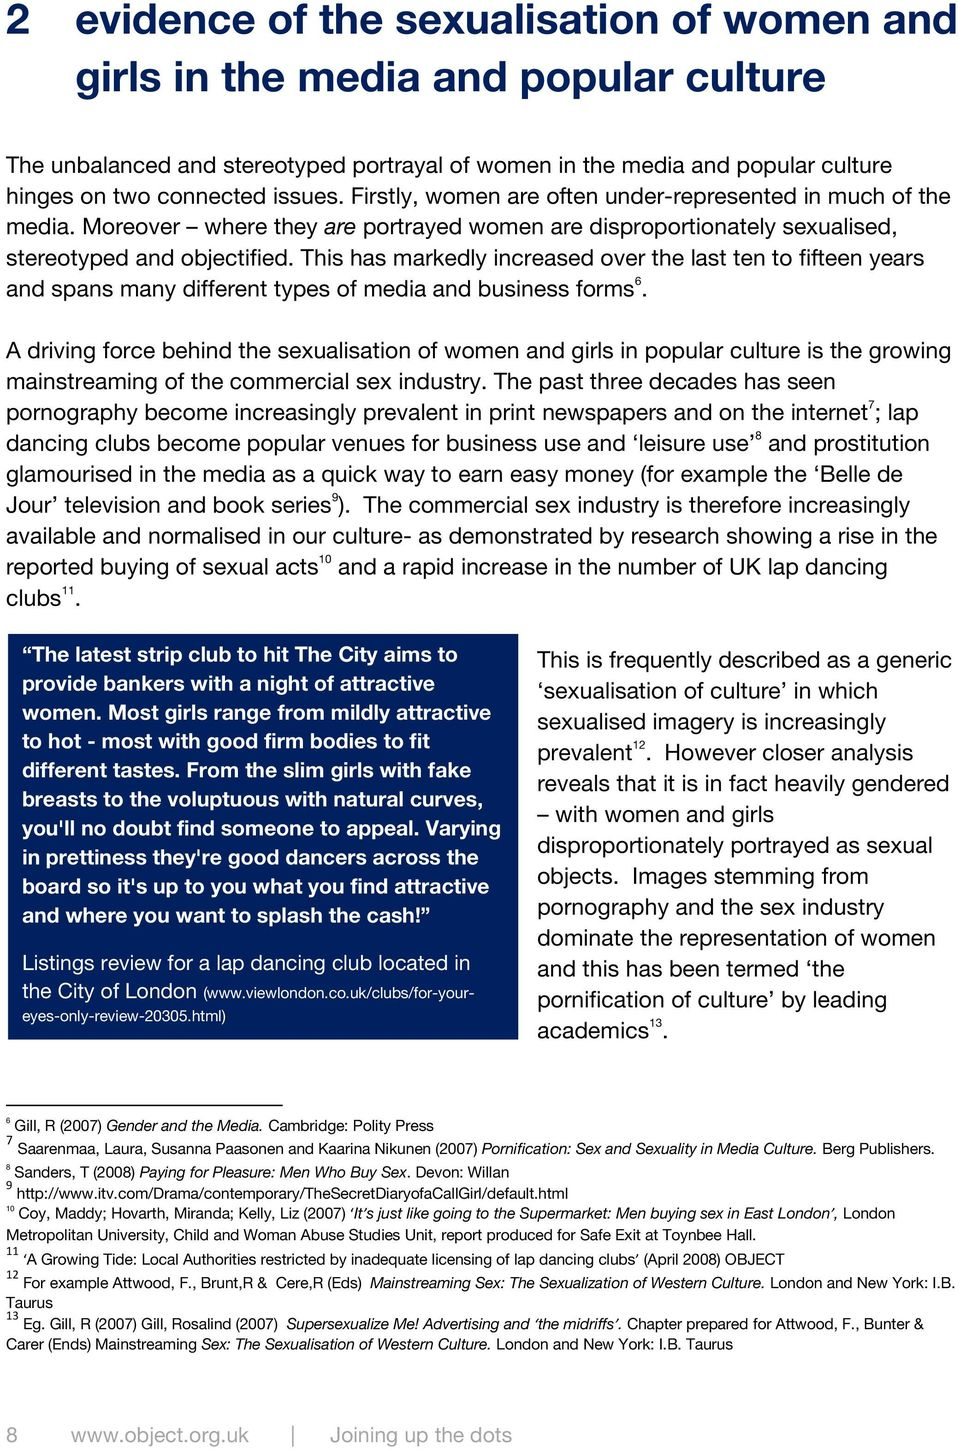 Beyond the sexualization of culture thesis statements